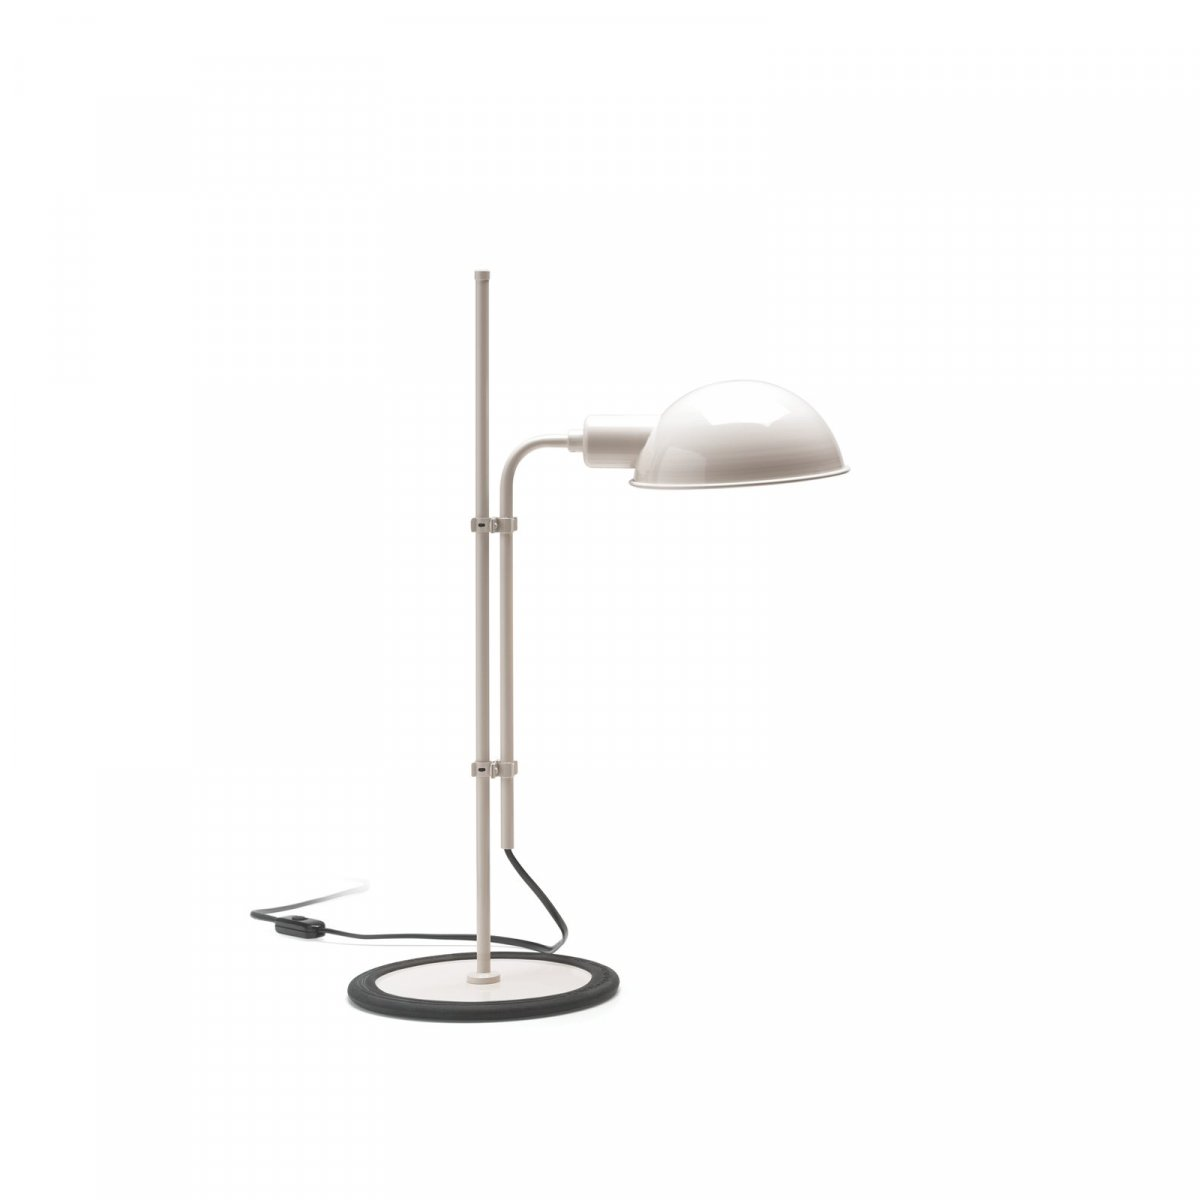 Funiculí S table lamp, white.